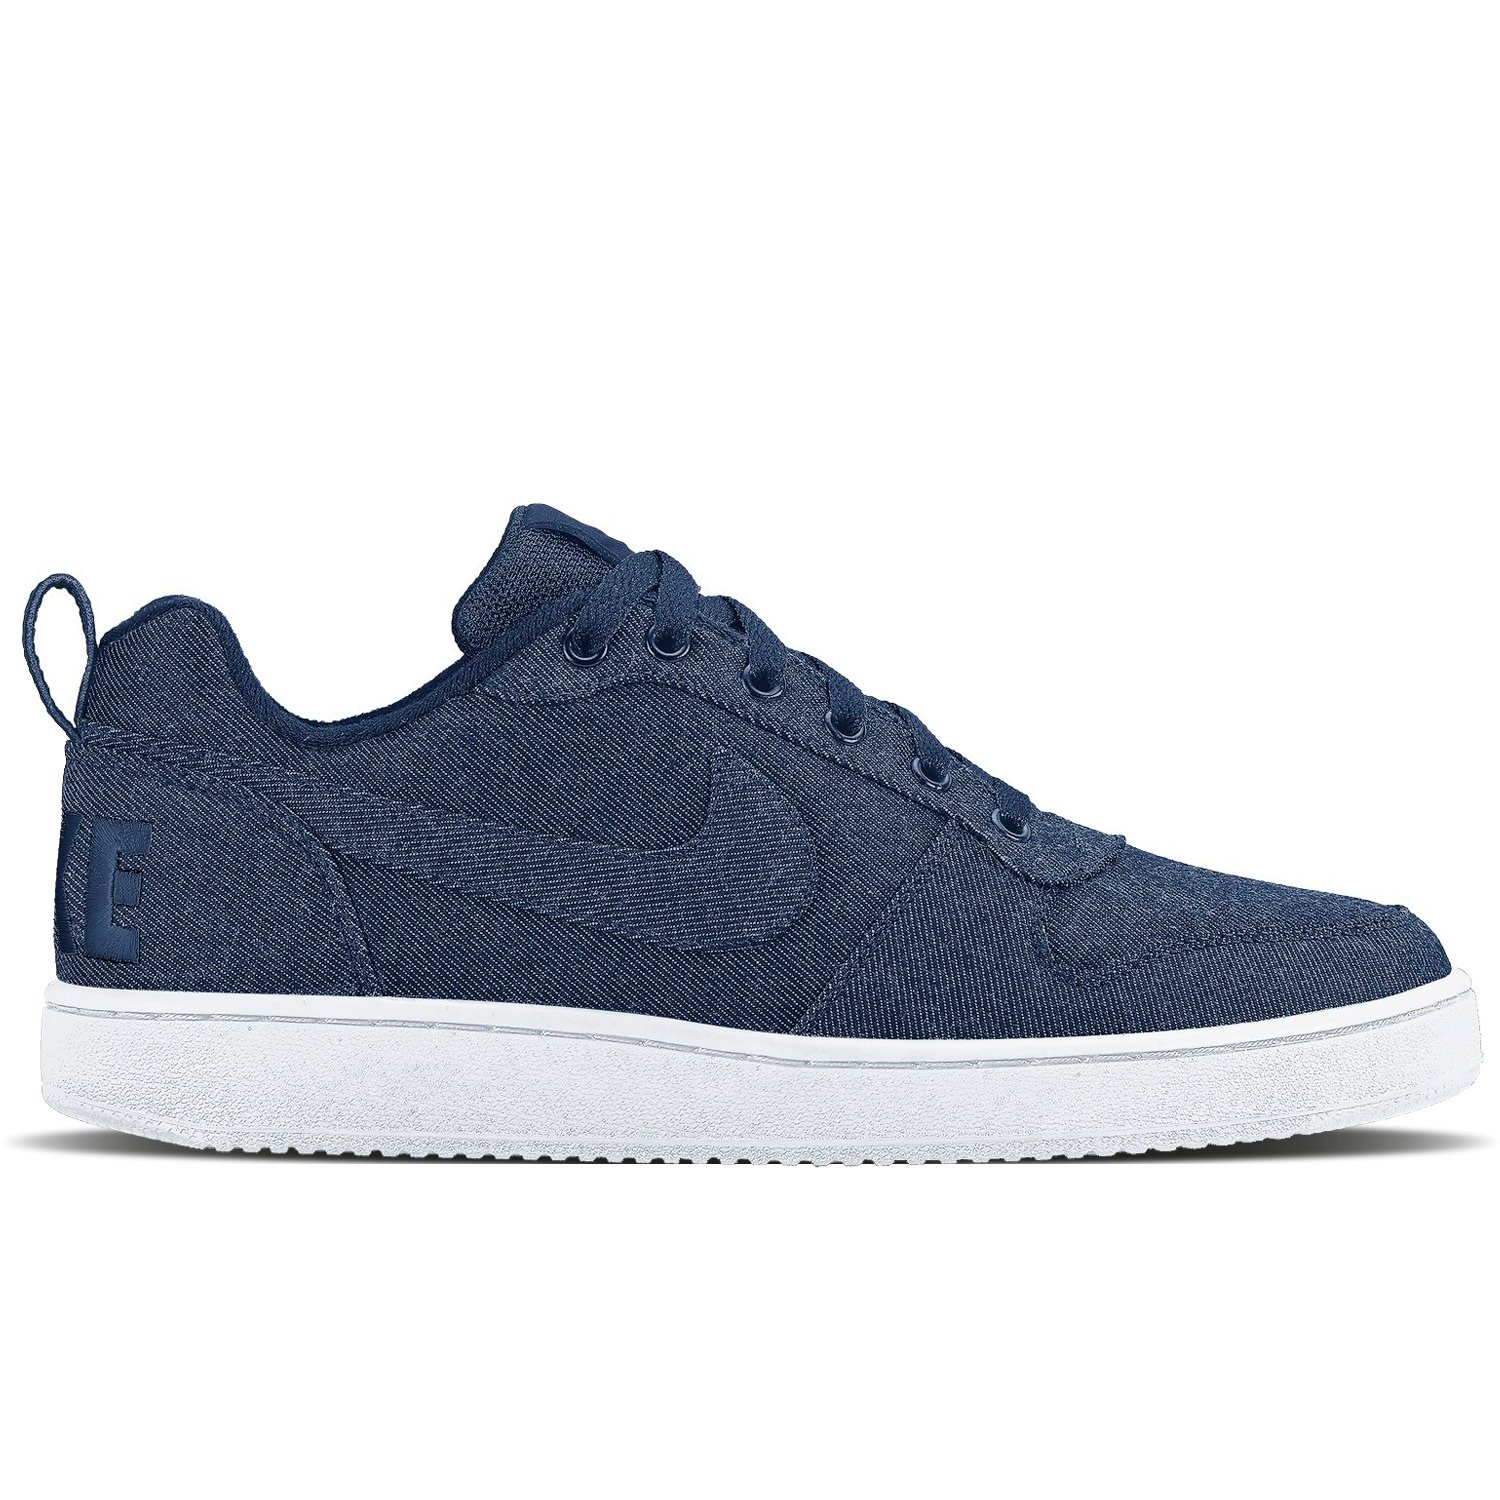 Nike Court Borough Low Premium Coastal Blue 844881 440